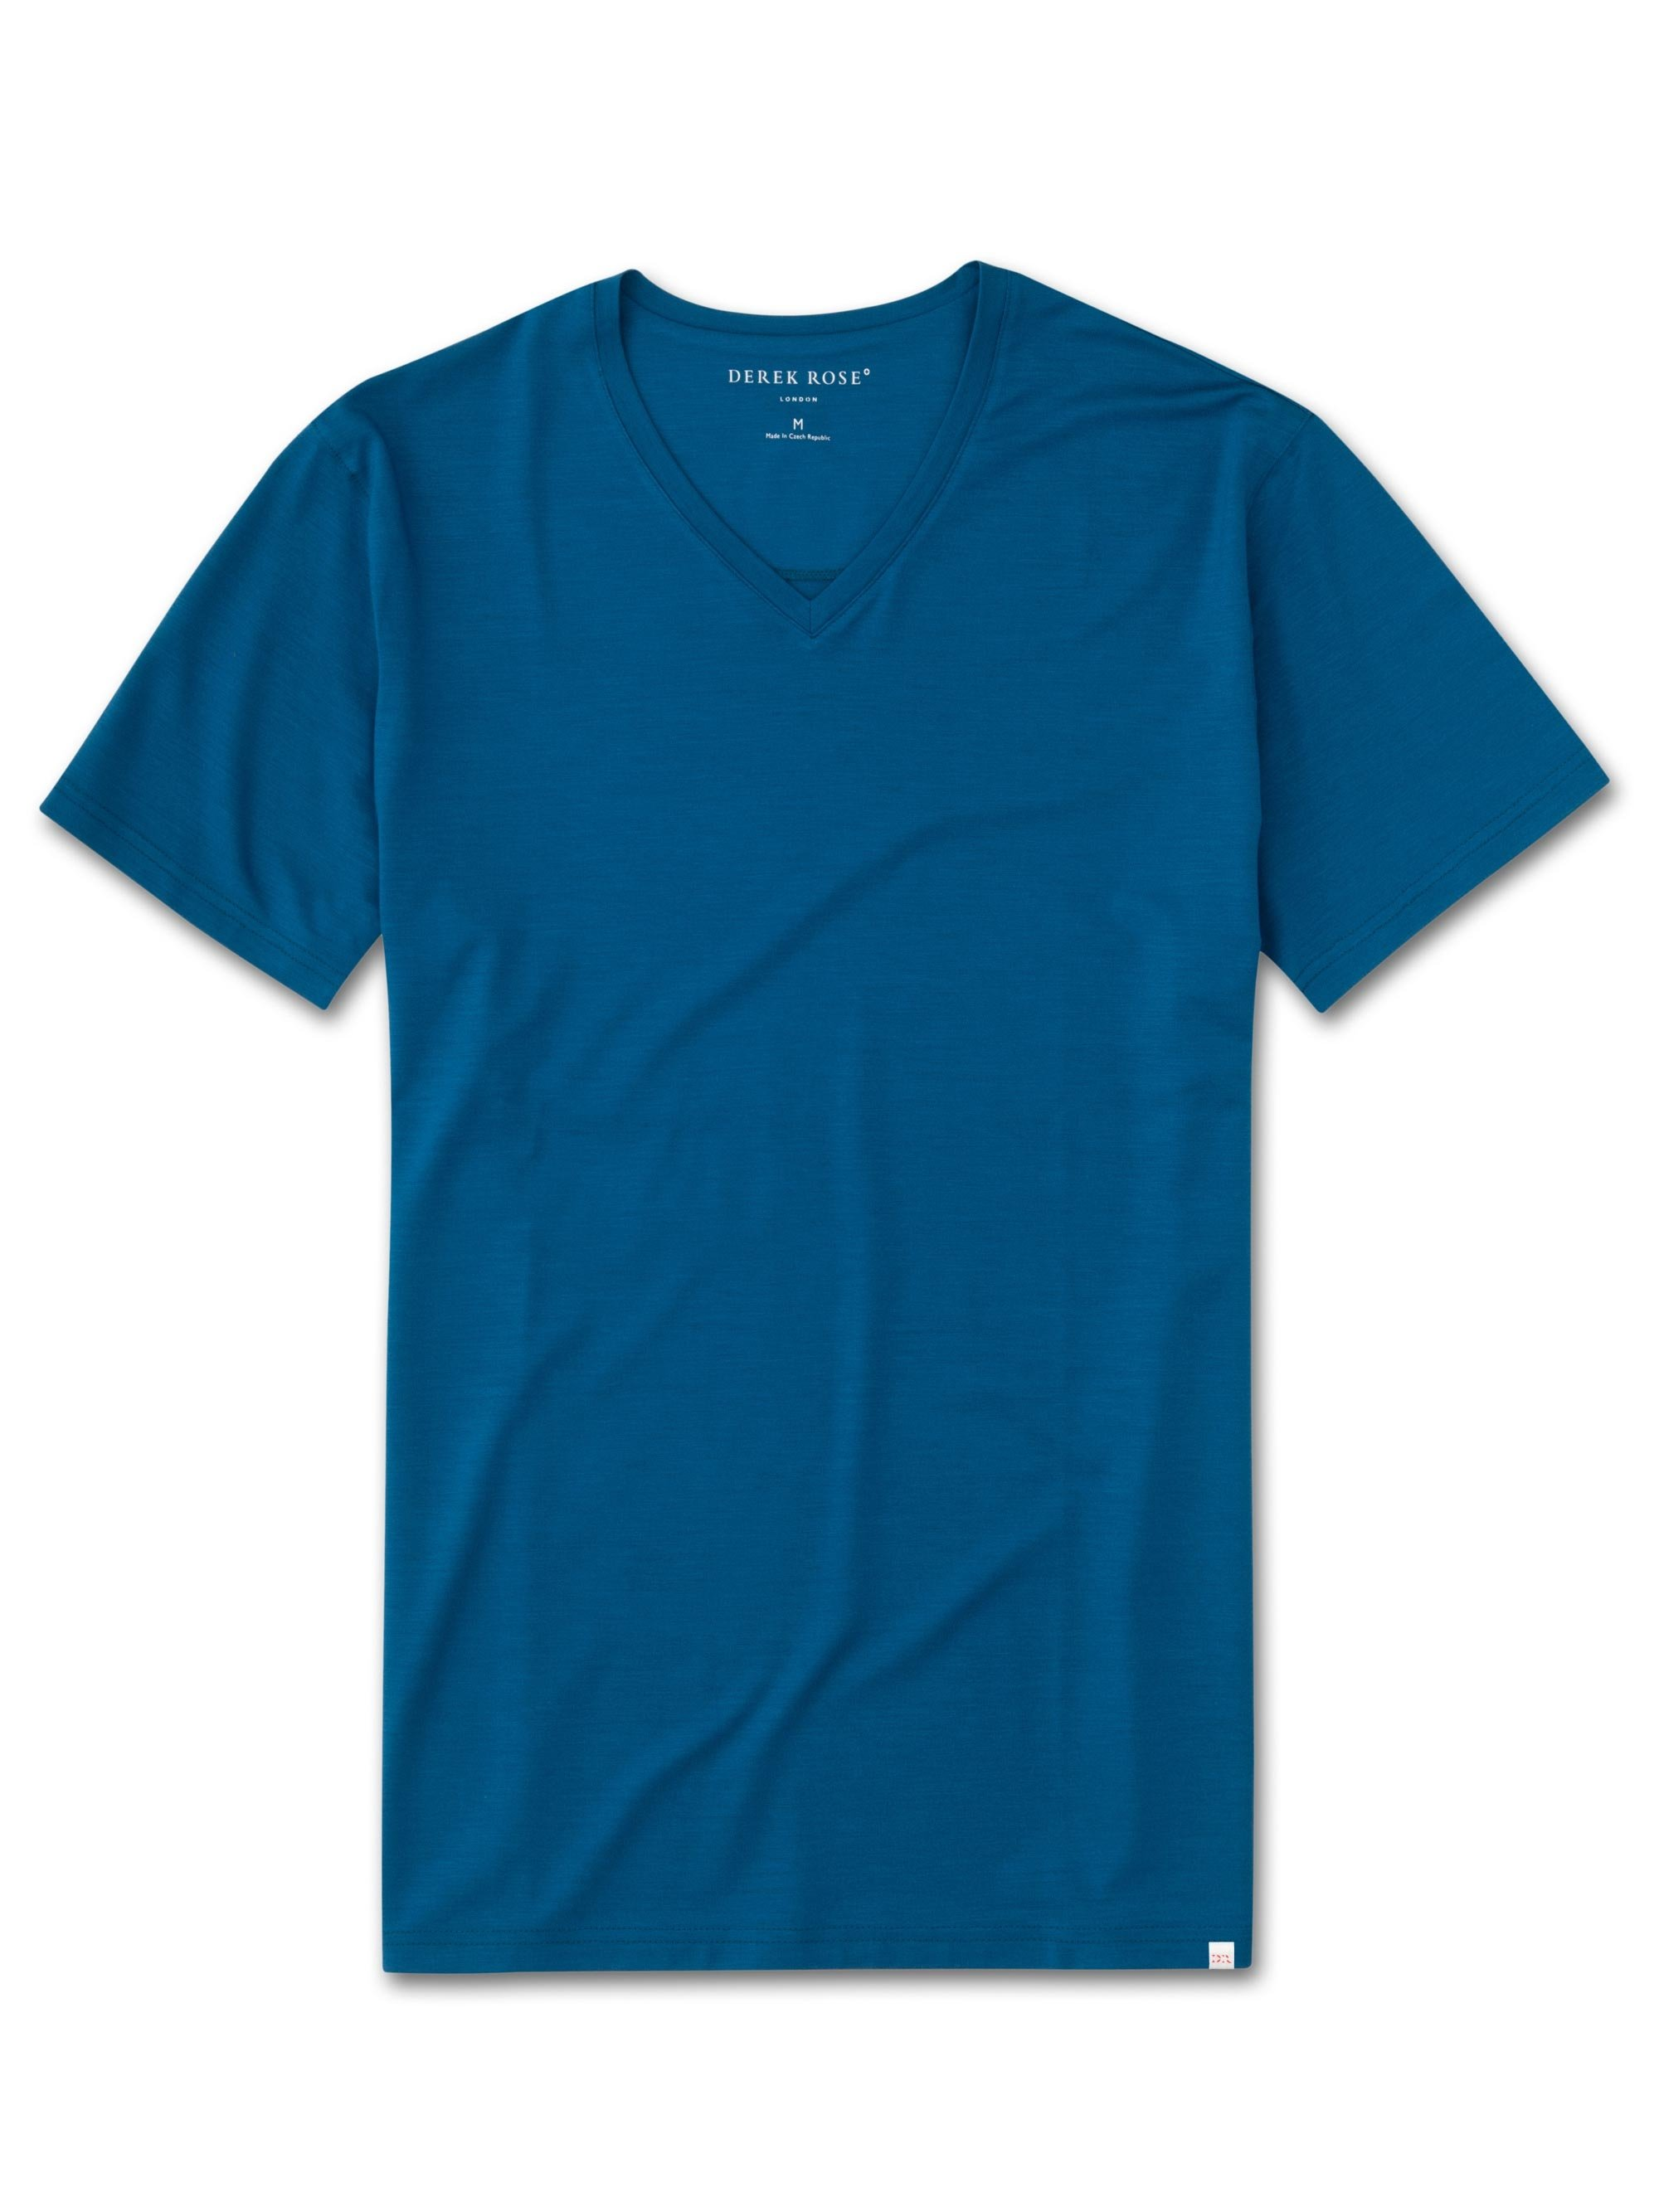 Men's Short Sleeve V-Neck T-Shirt Basel 7 Micro Modal Stretch Ocean